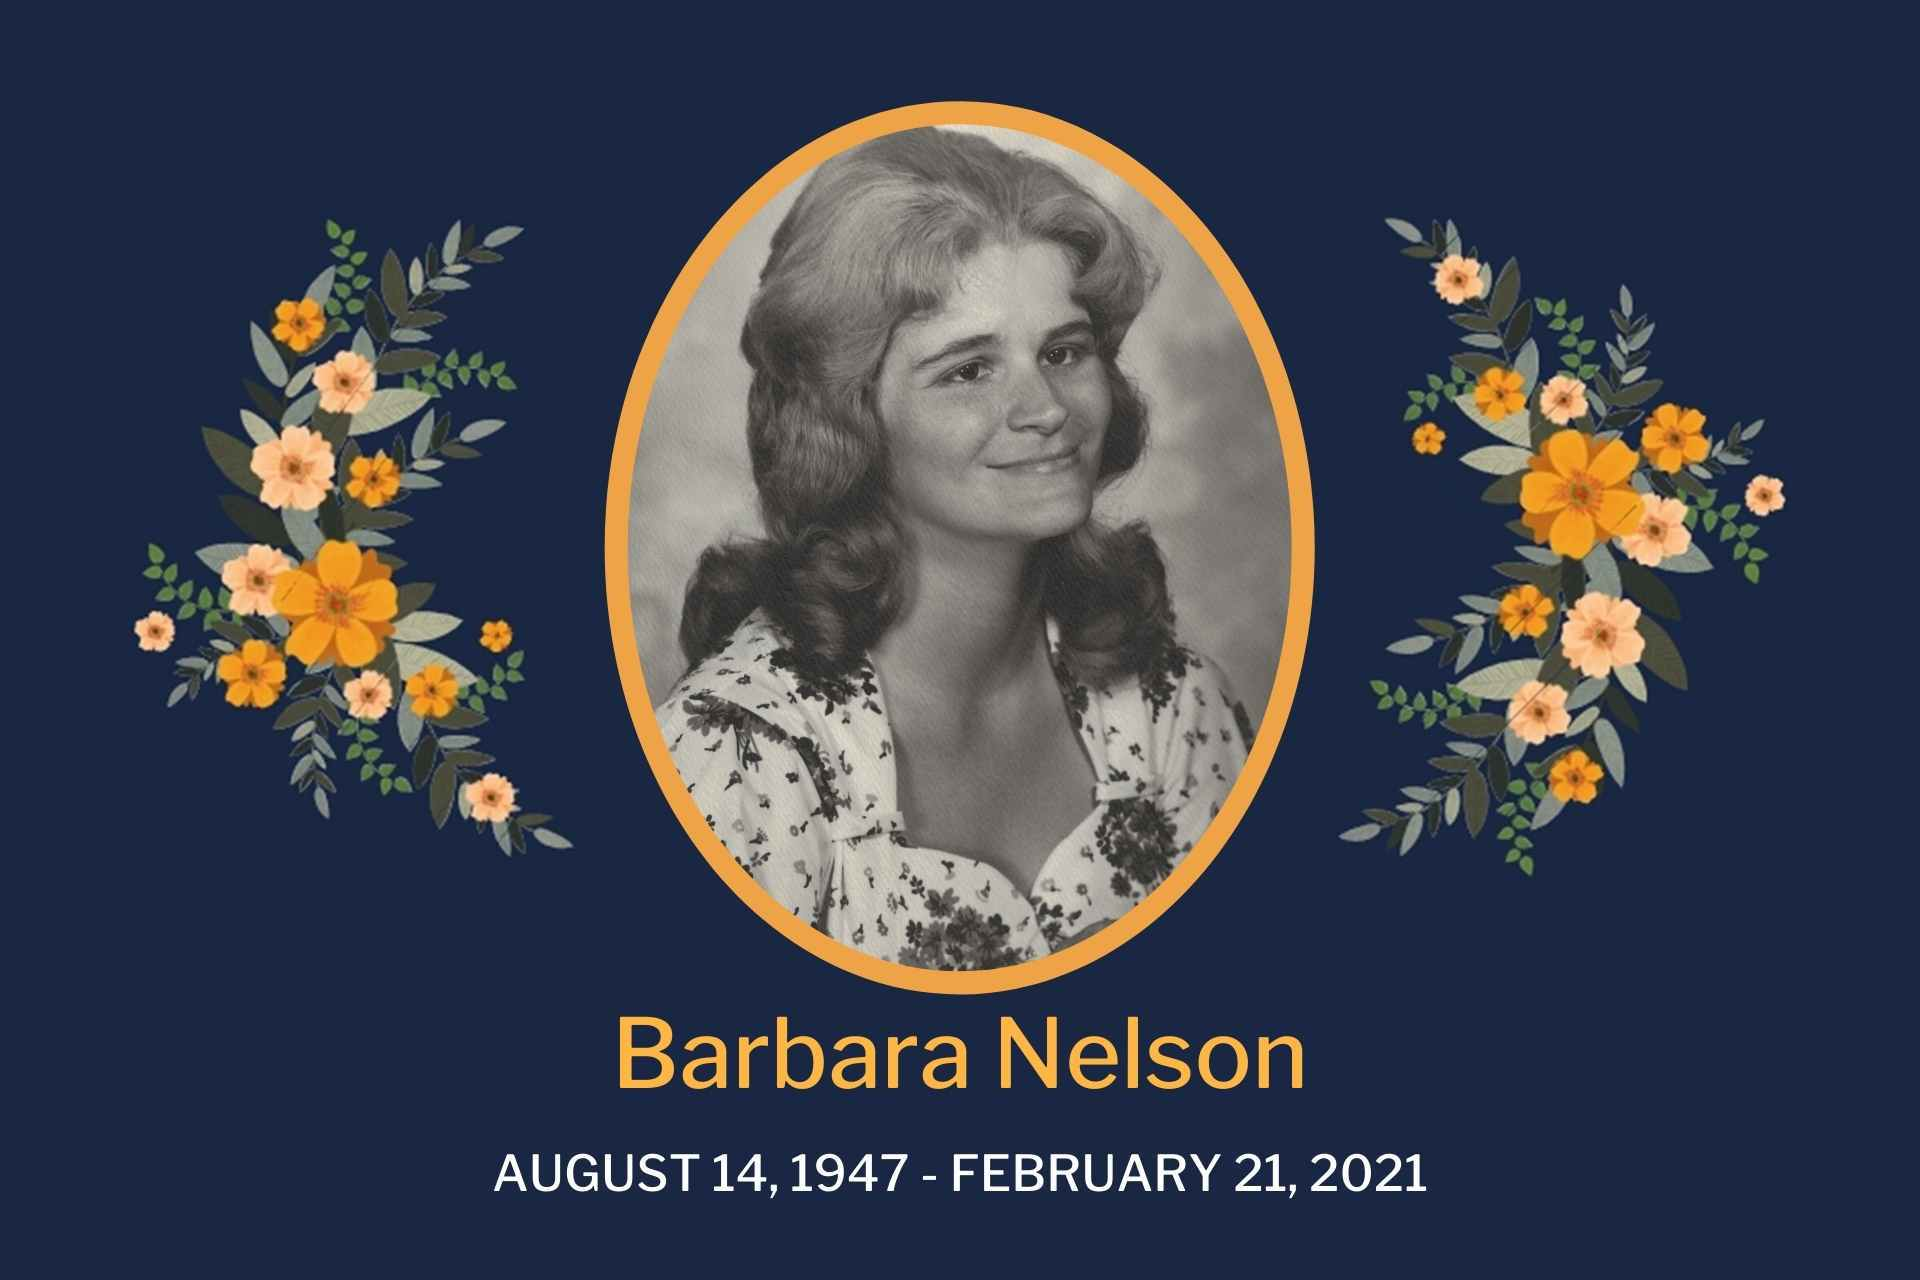 Obituary Barbara Nelson